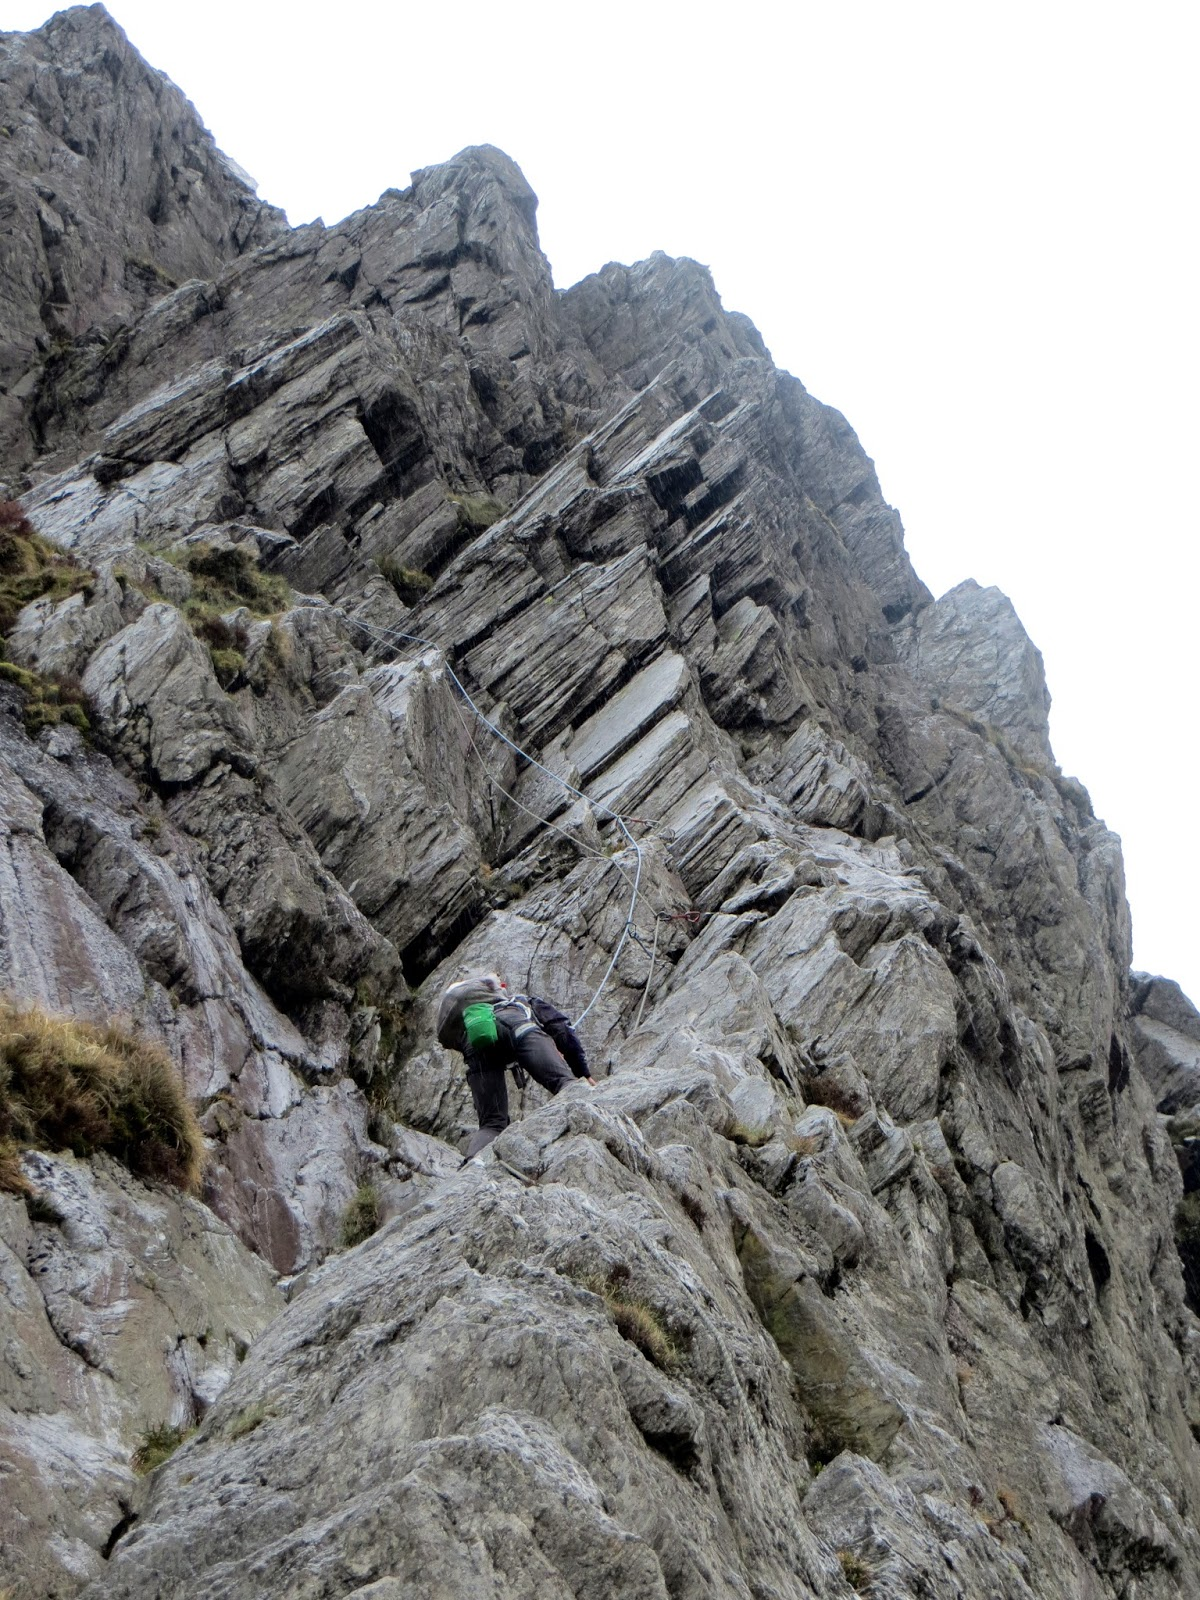 tryfan, campsite, grooved arete, multi pitch, Wales, climbing, adventure, trad, sport, llanberis, snowdon, snowdonia, great britain, uk, outdoors, landscape, photography, scenic, beautiful, high, scramble, climb, mountain,